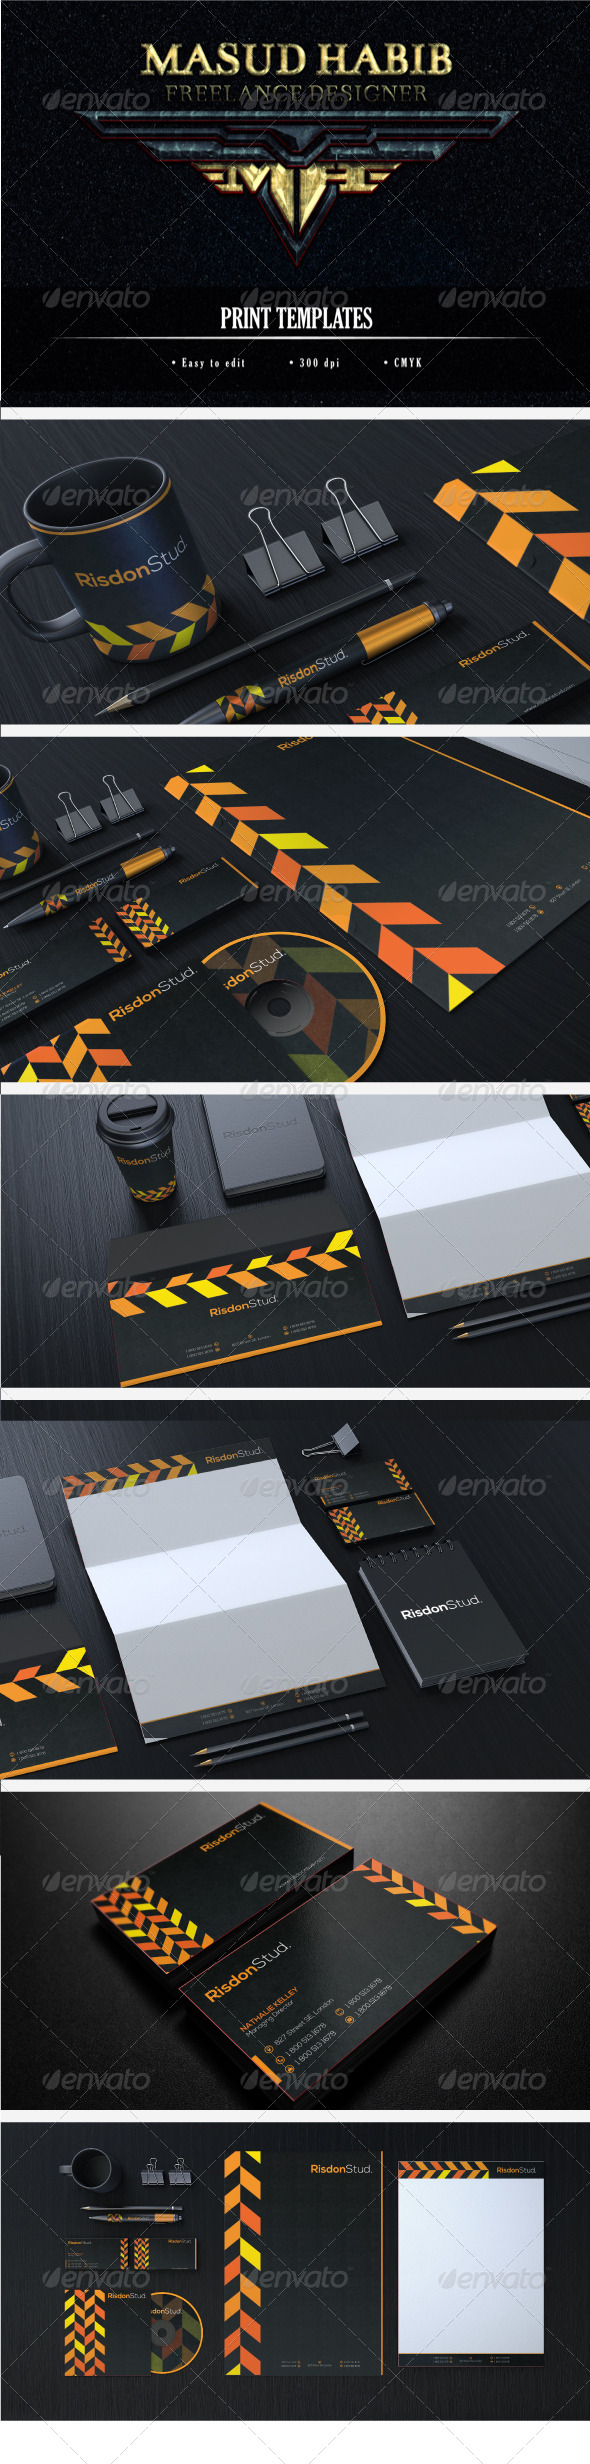 Creative Corporate Identity 17 - Stationery Print Templates